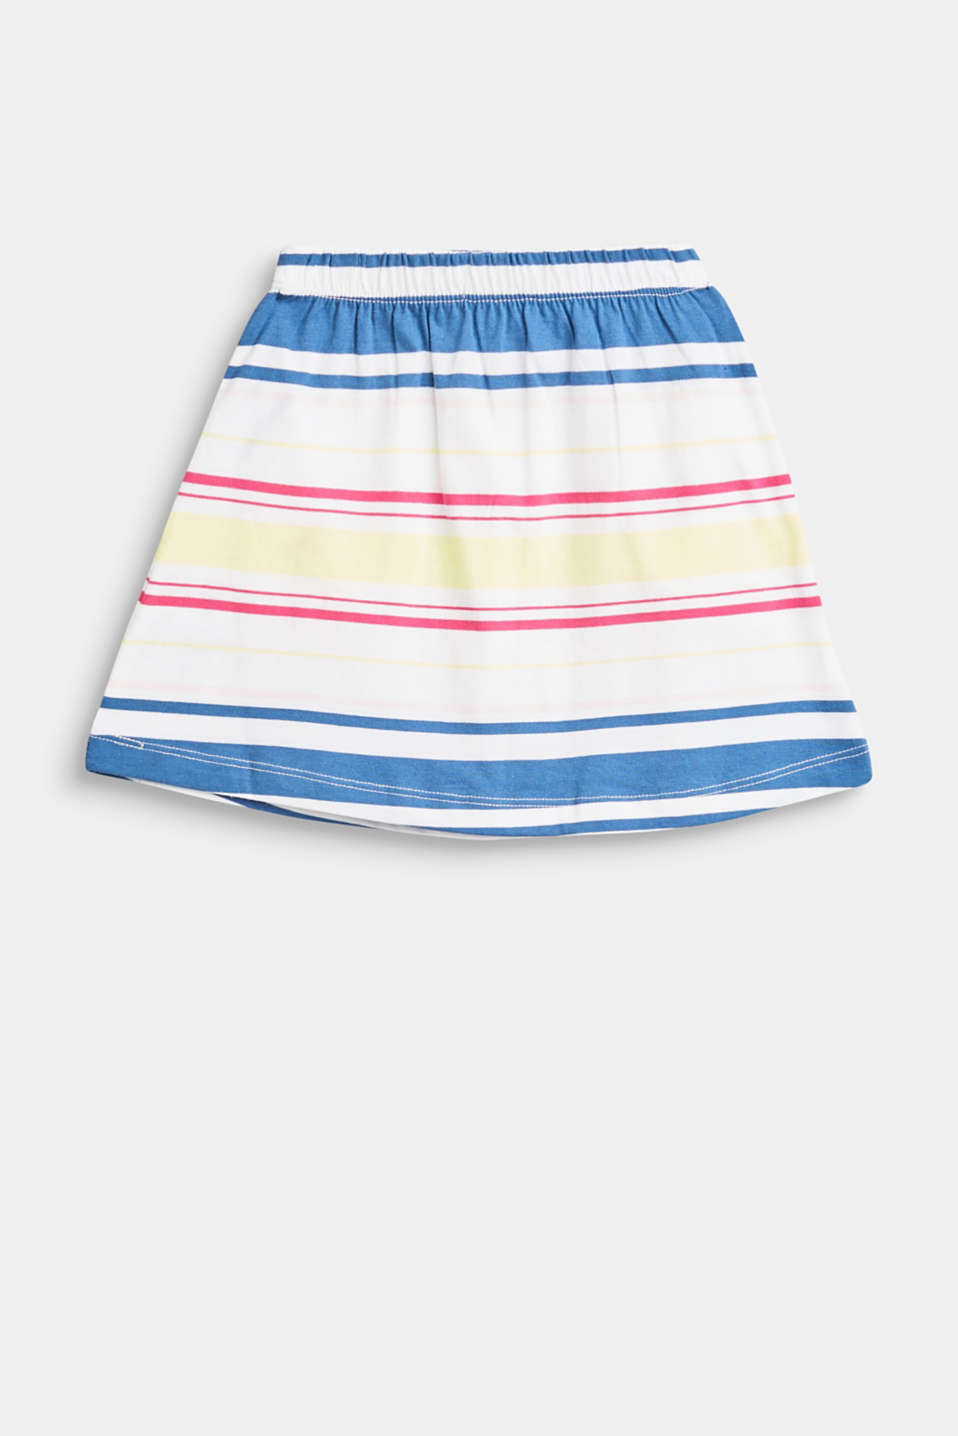 Striped skirt with an elasticated waistband, 100% cotton